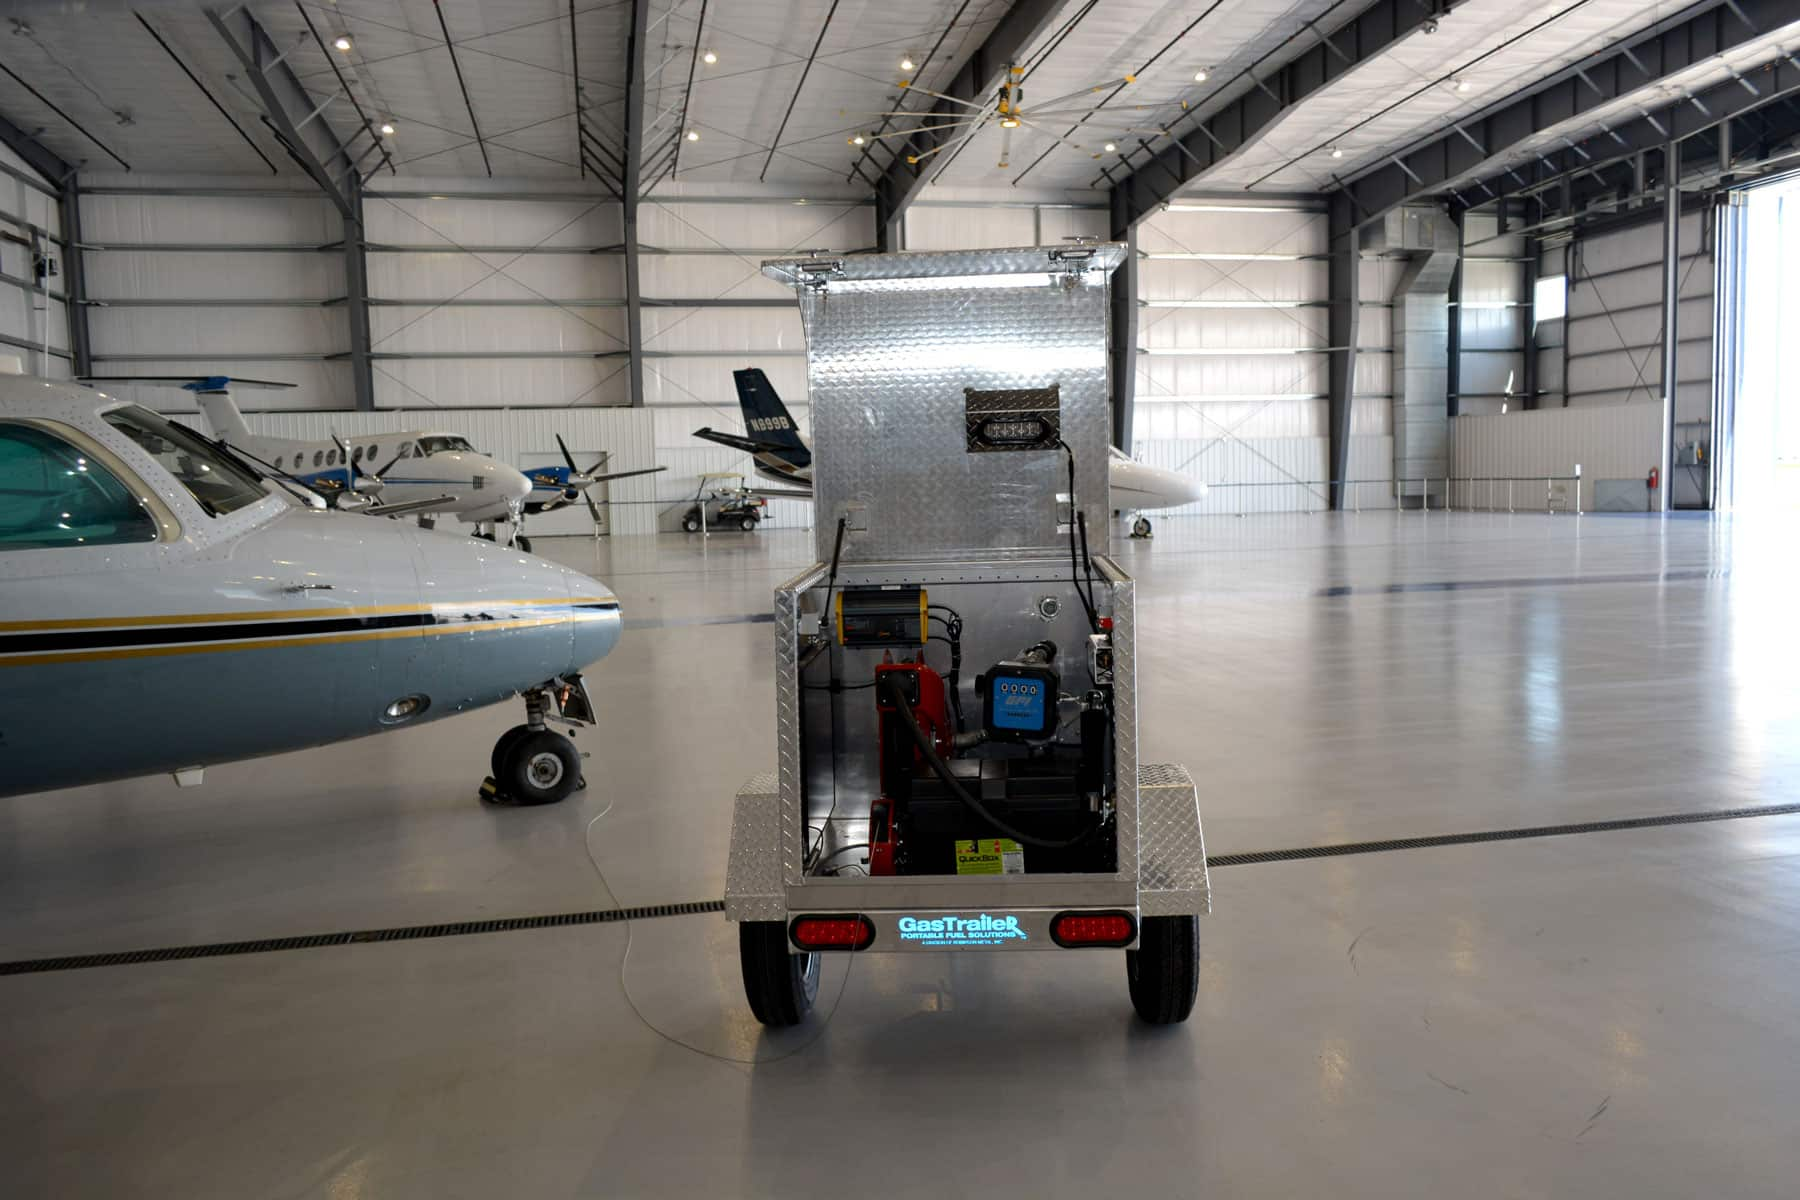 Robinson's portable fuel tank trailer brings gas where it's needed